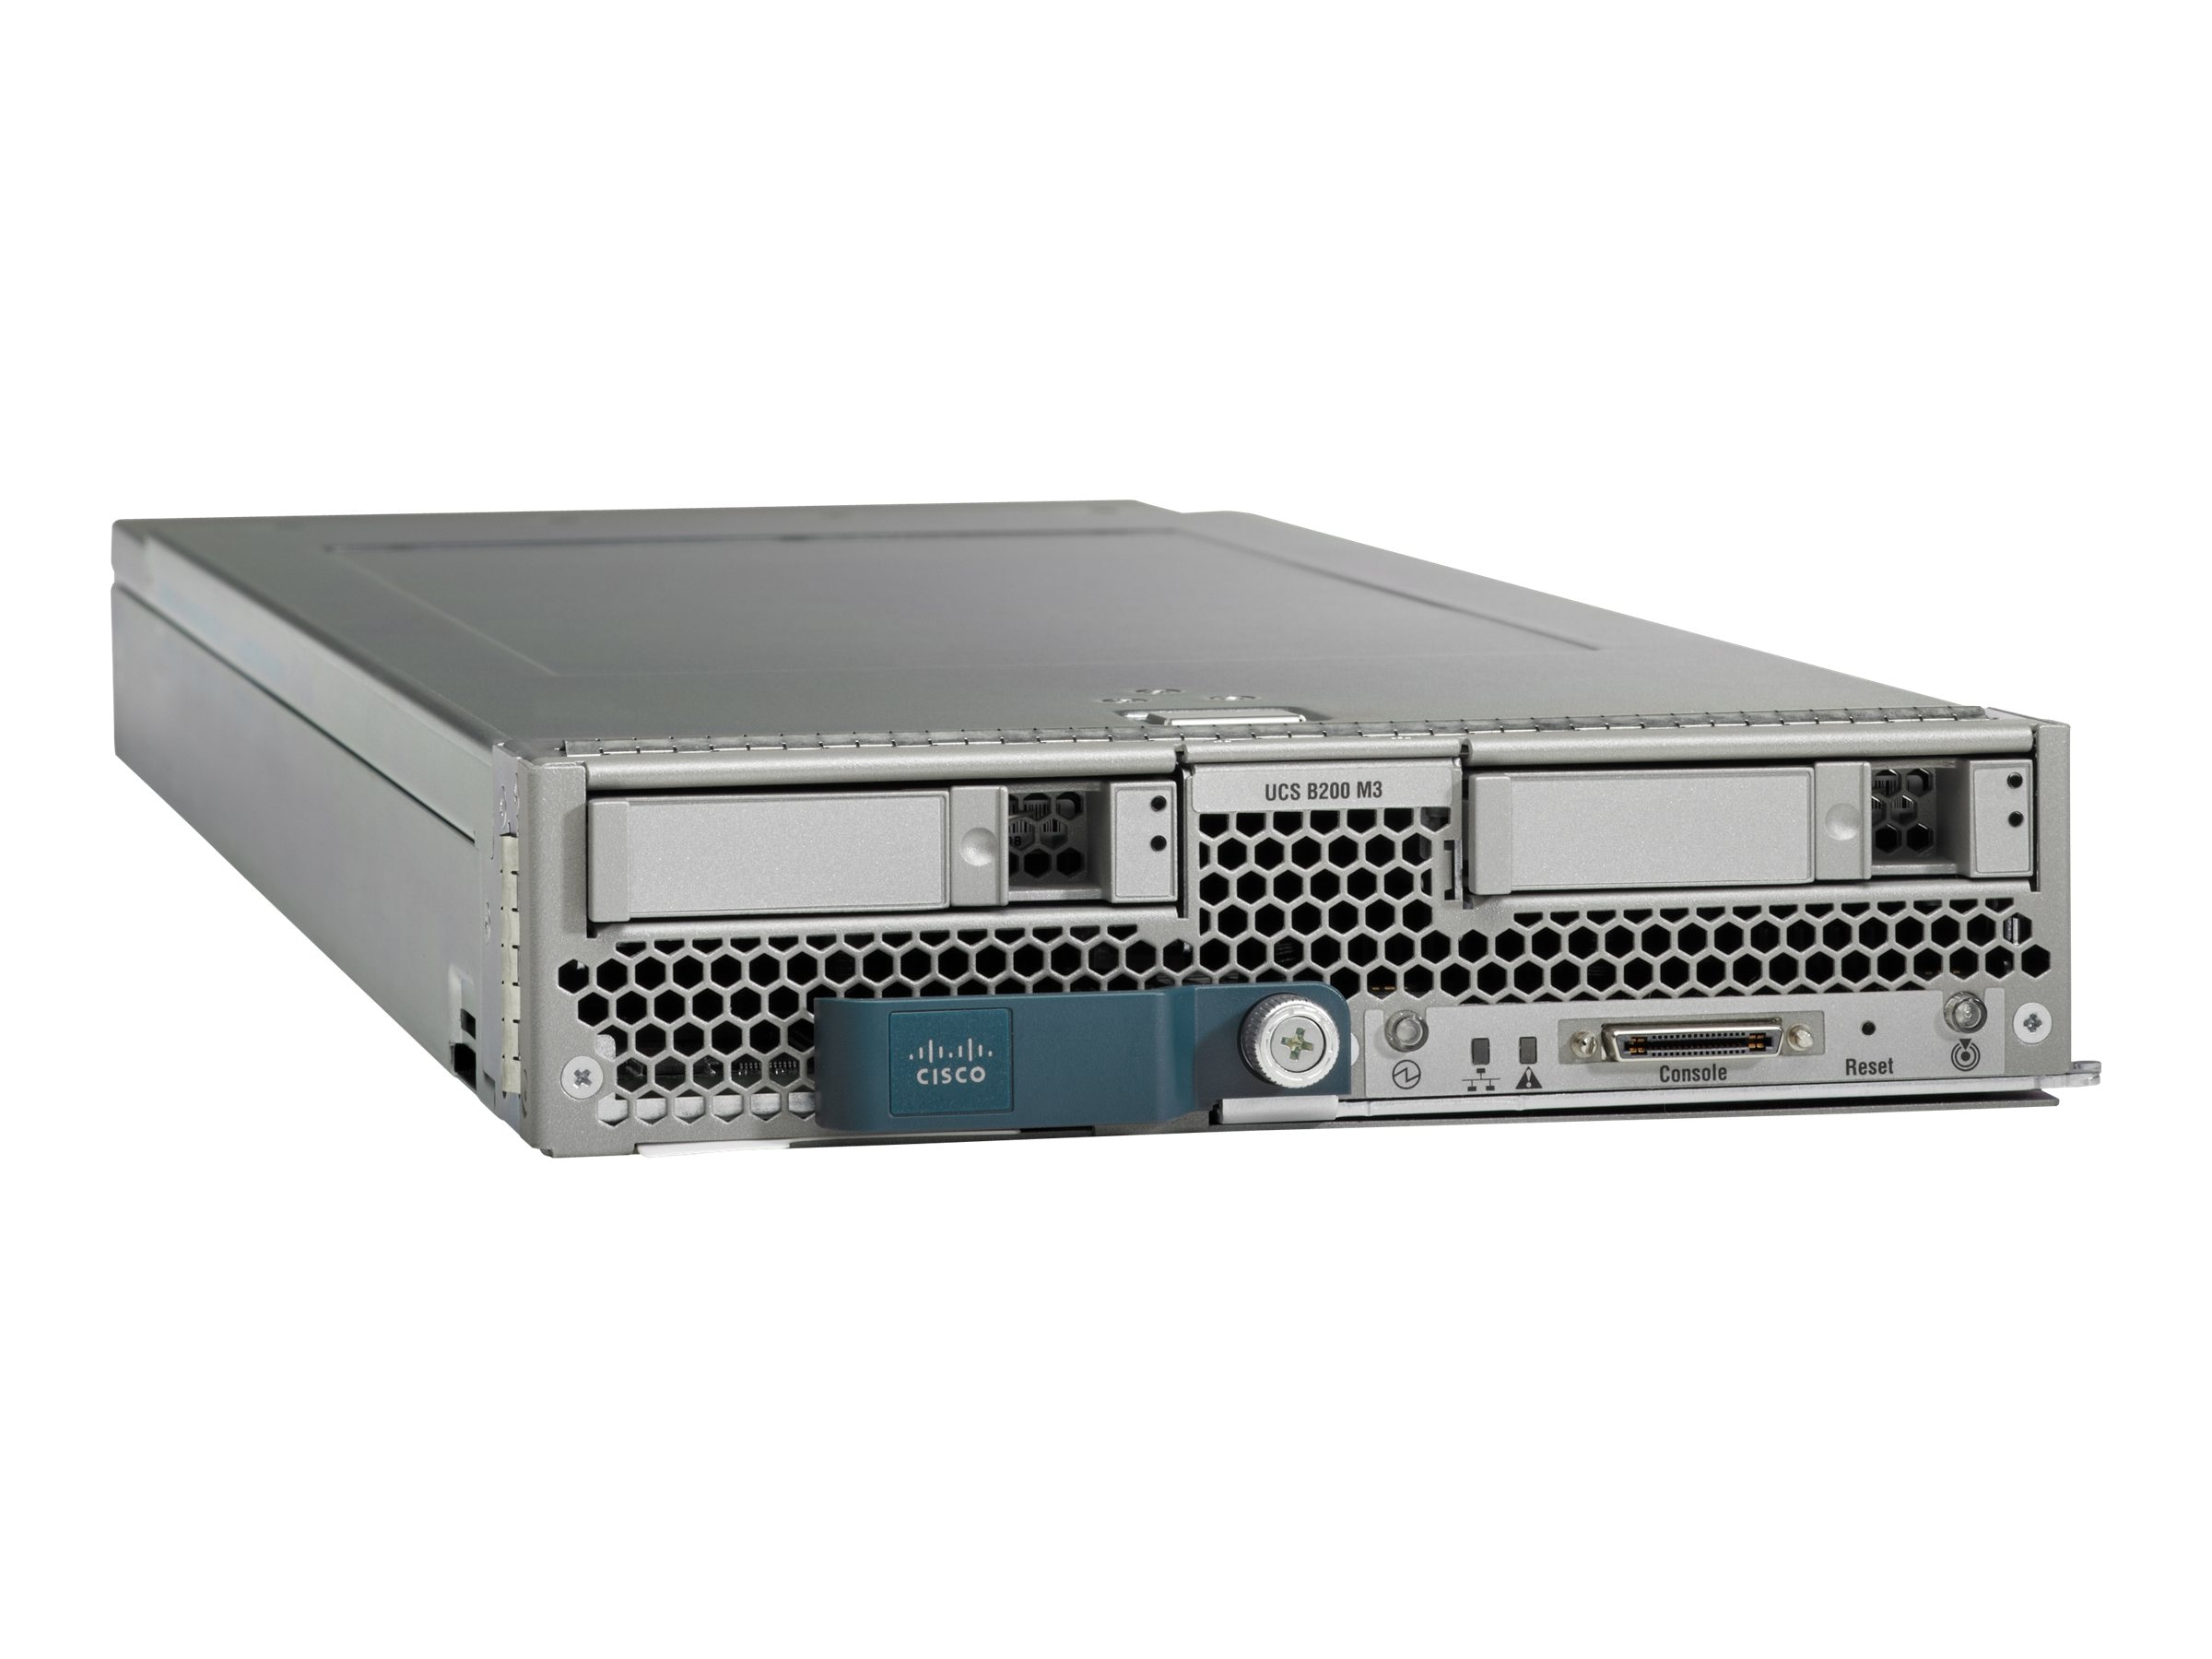 Cisco UCS B200 M3 SmartPlay Perf Expansion Pack (2x)Xeon 8C E5-2680 2.7GHz 256GB DDR3 2x2.5 HS Bays 10GbE, UCS-EZ-PERF-B200M3